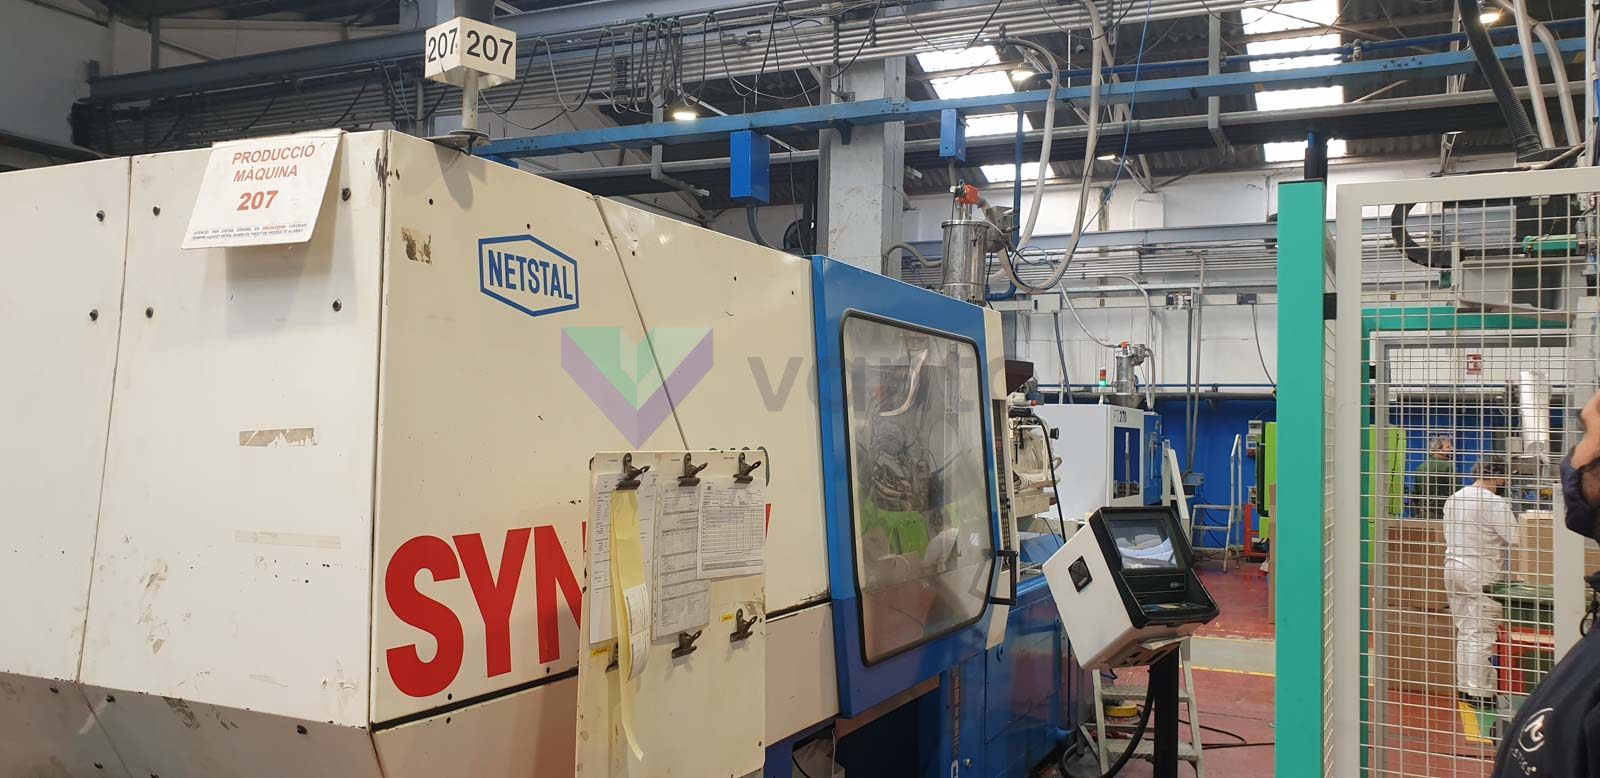 NETSTAL SYNERGY 2400-900 240t injection molding machine (1998) id10510